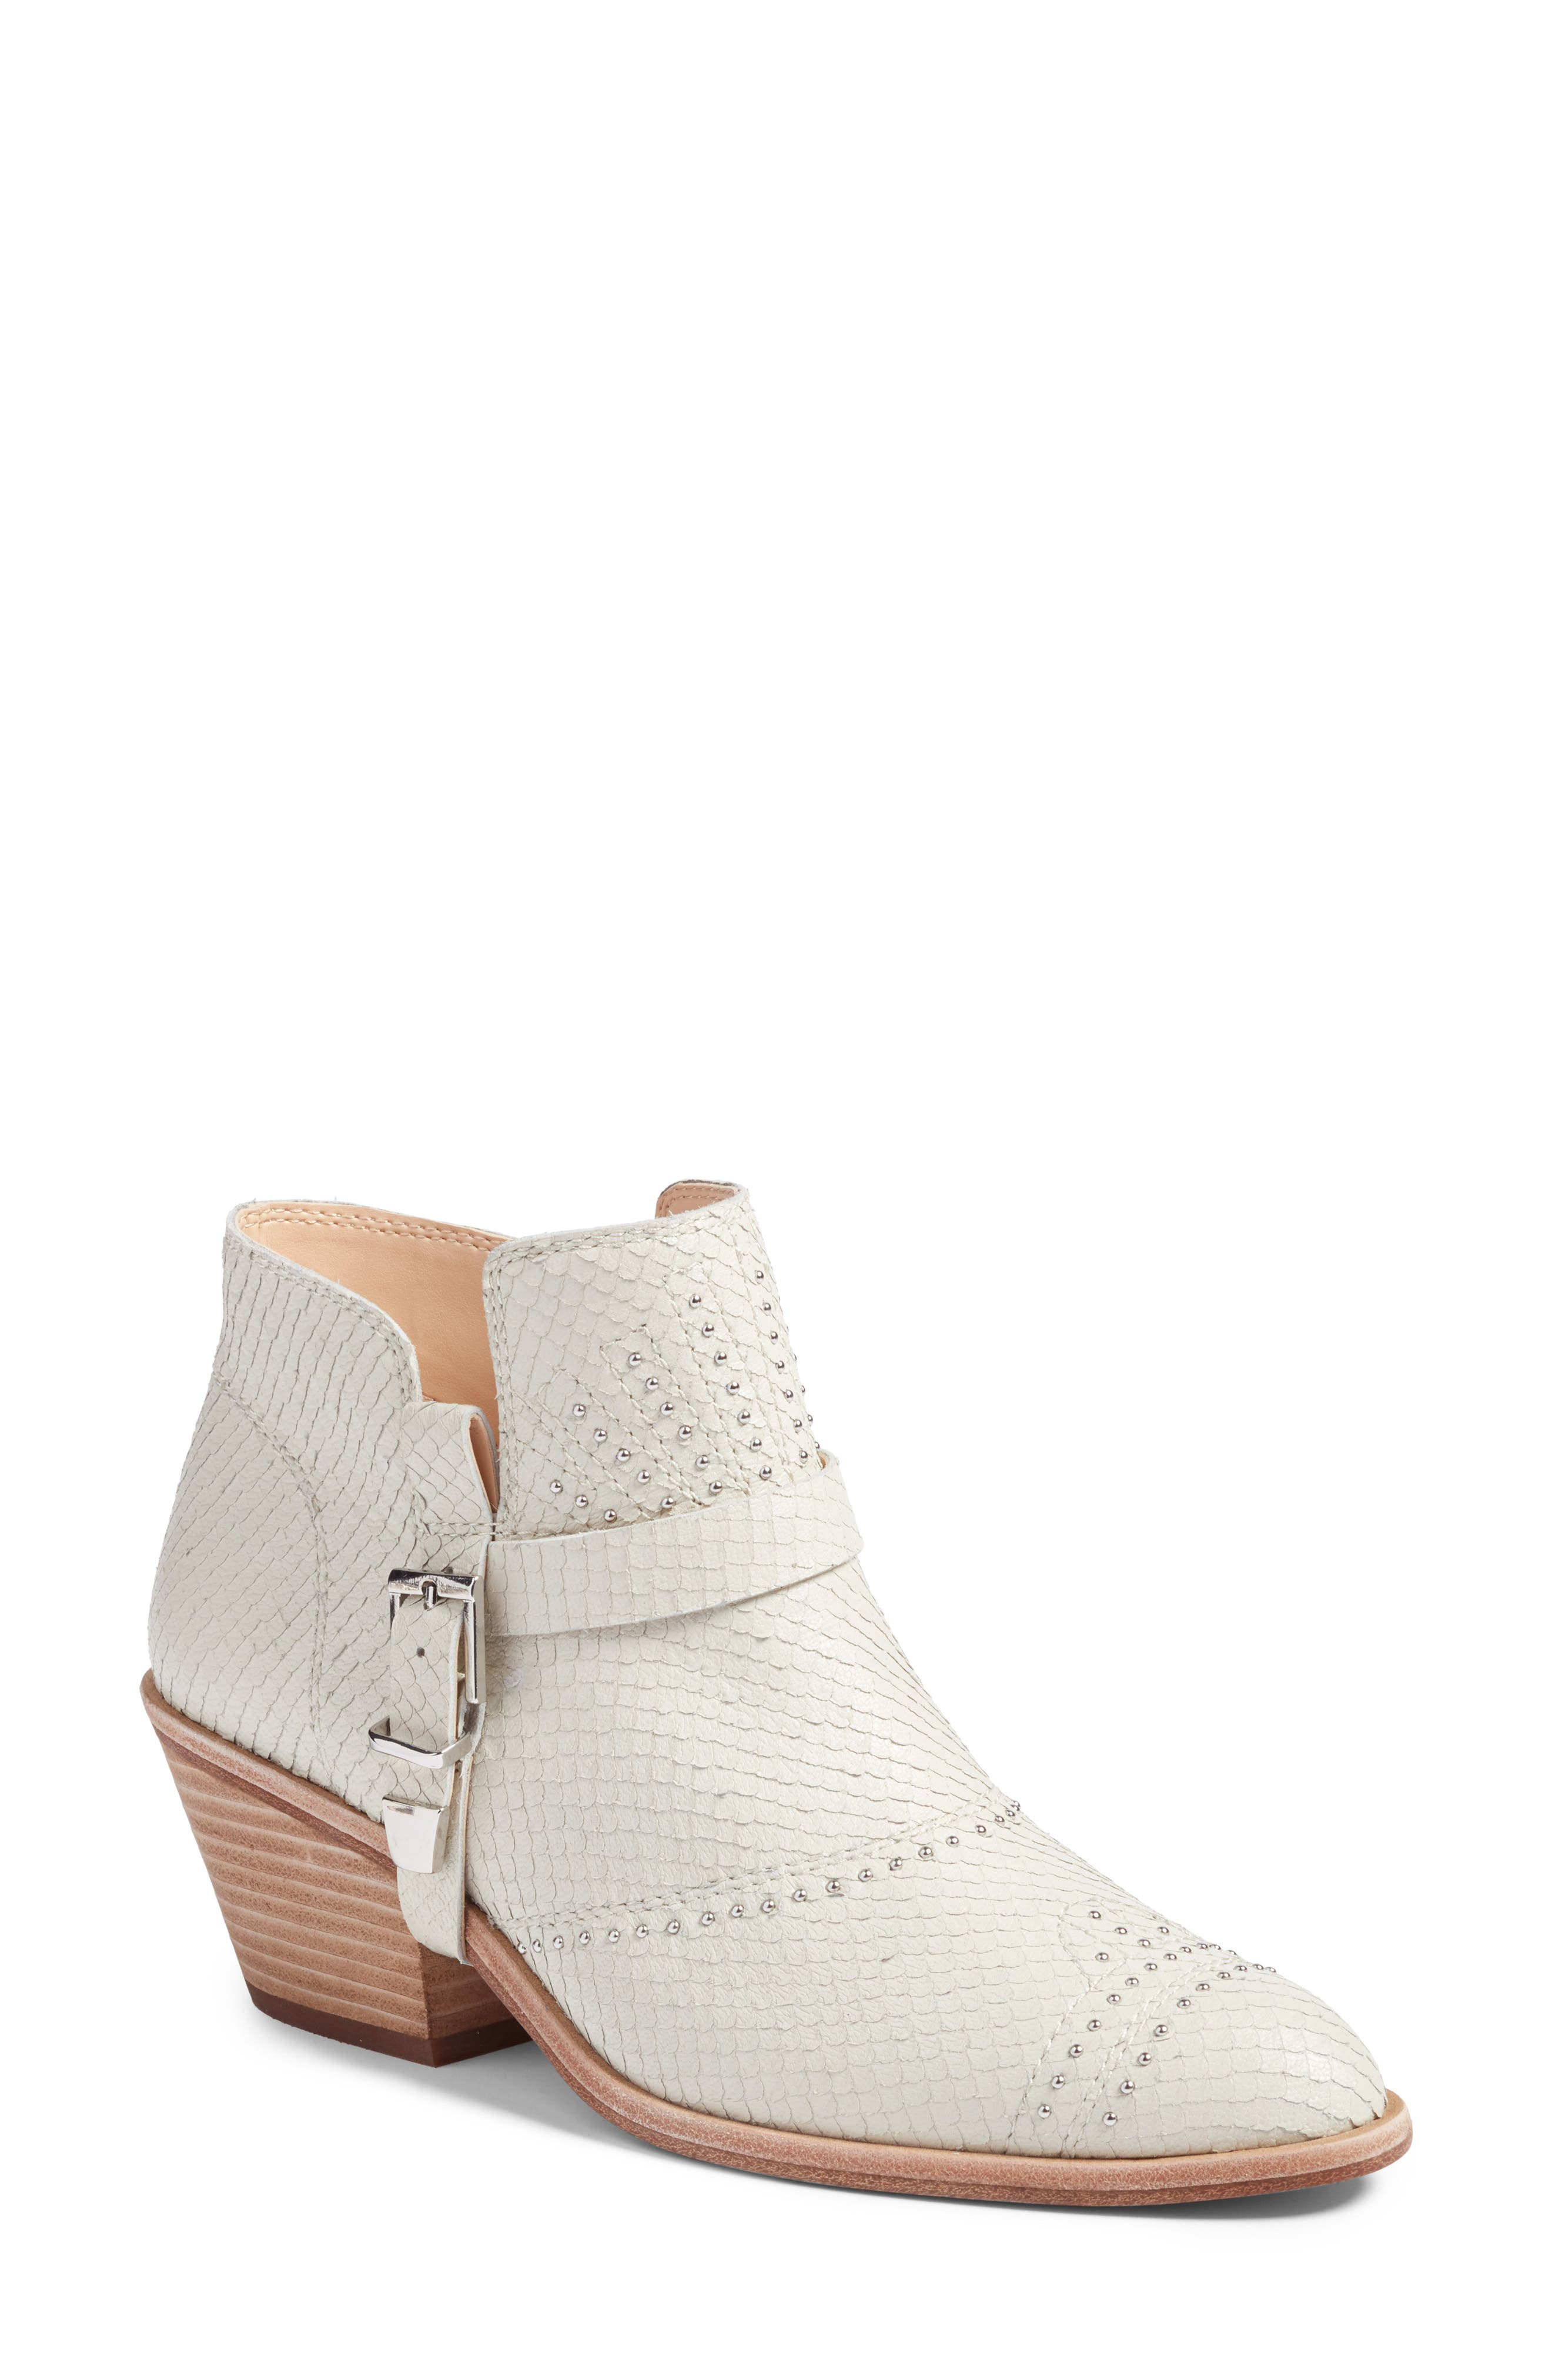 Dorintina Bootie,                         Main,                         color, White Fox Trot